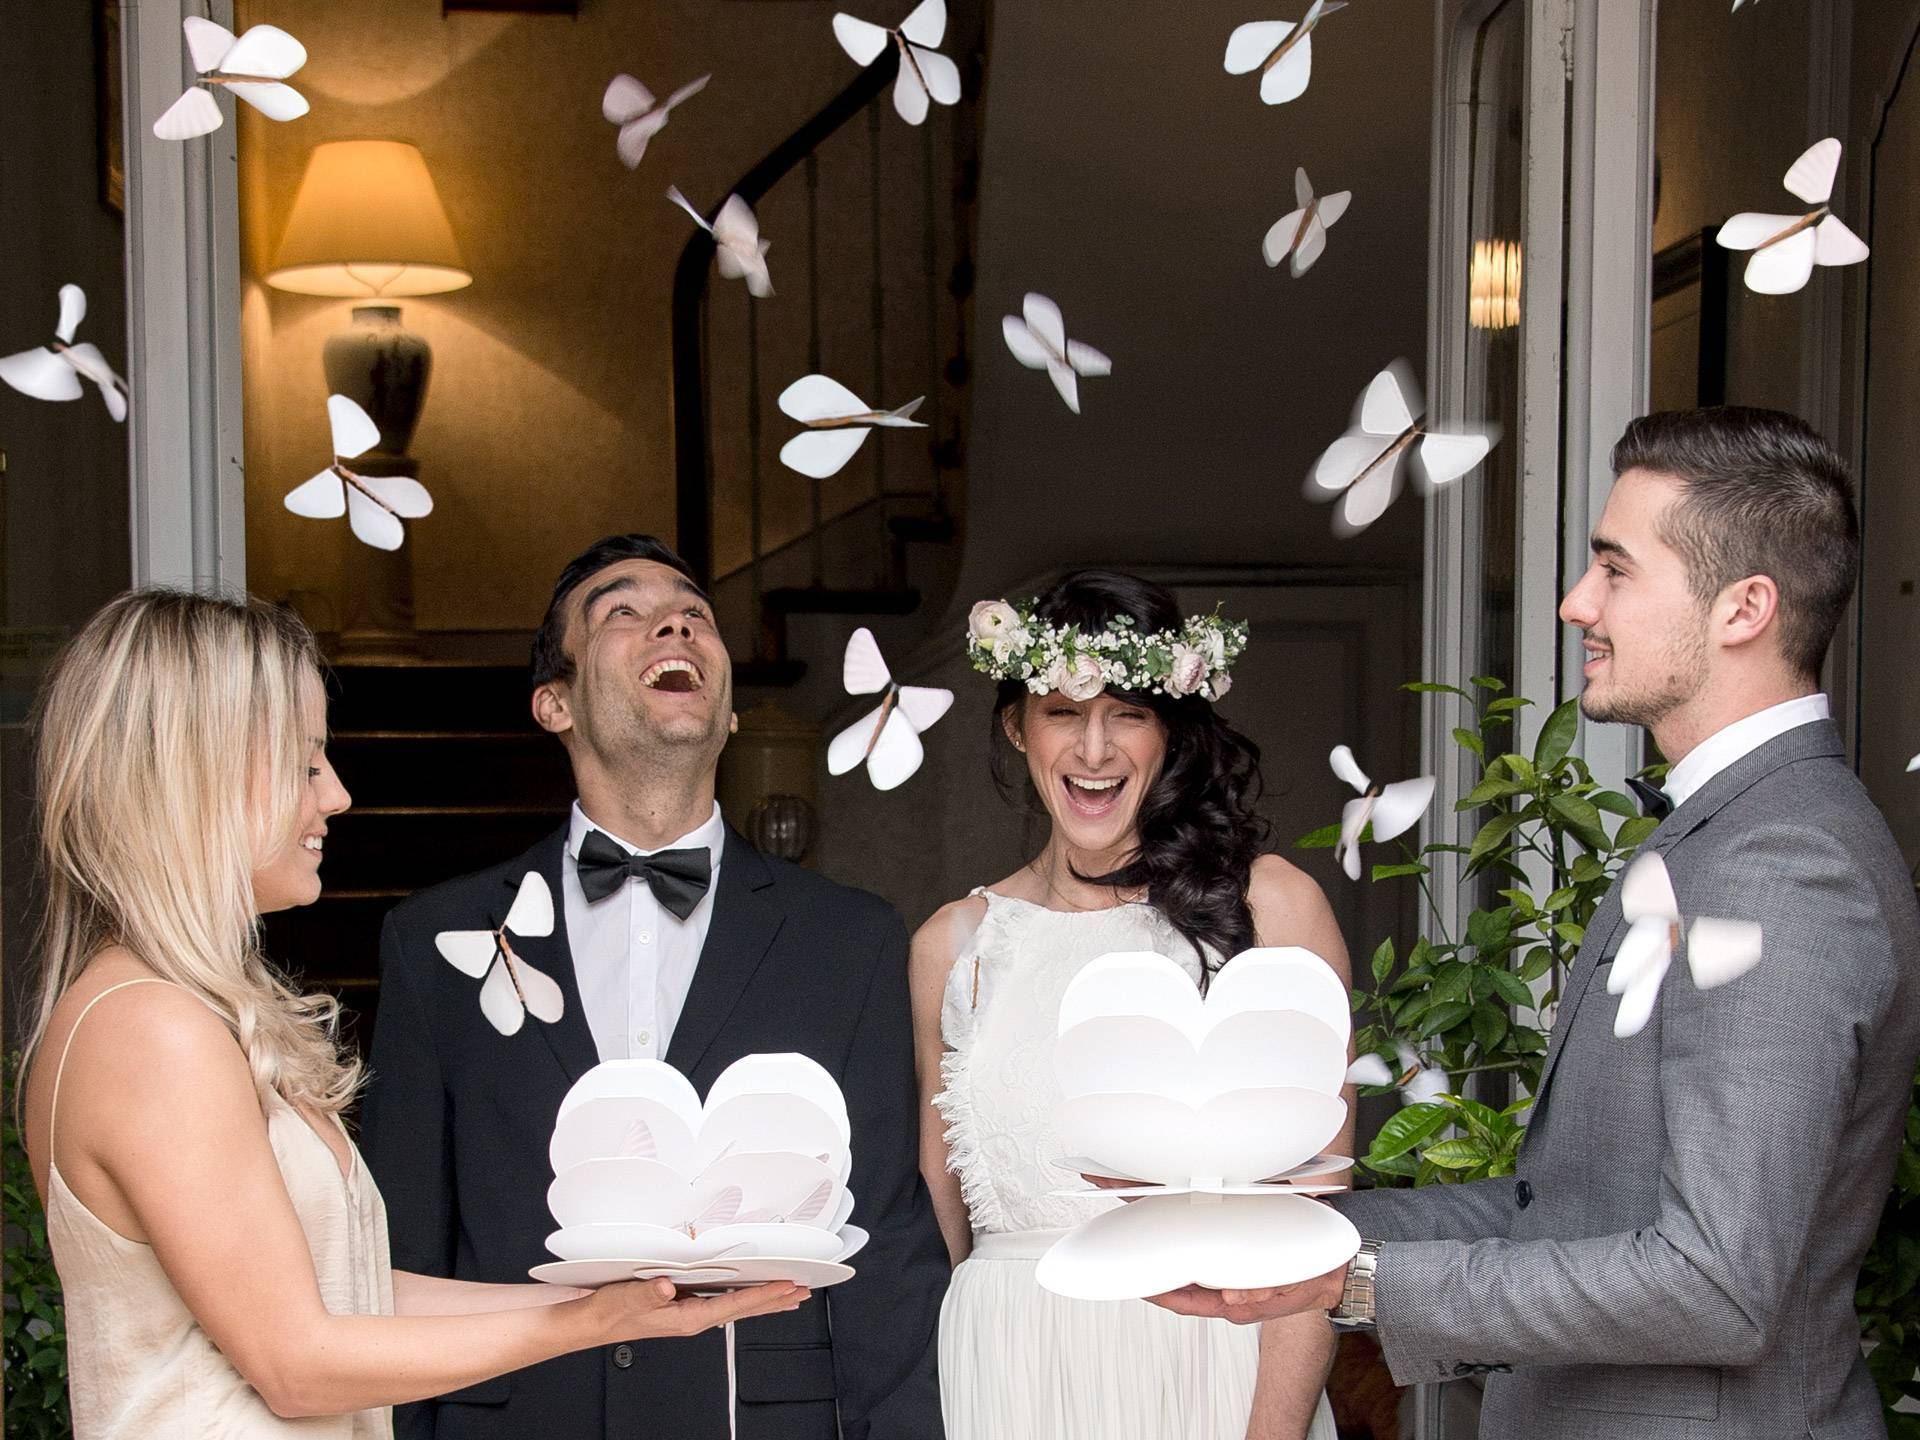 Happy wedding couple surrounded by flying butterflies